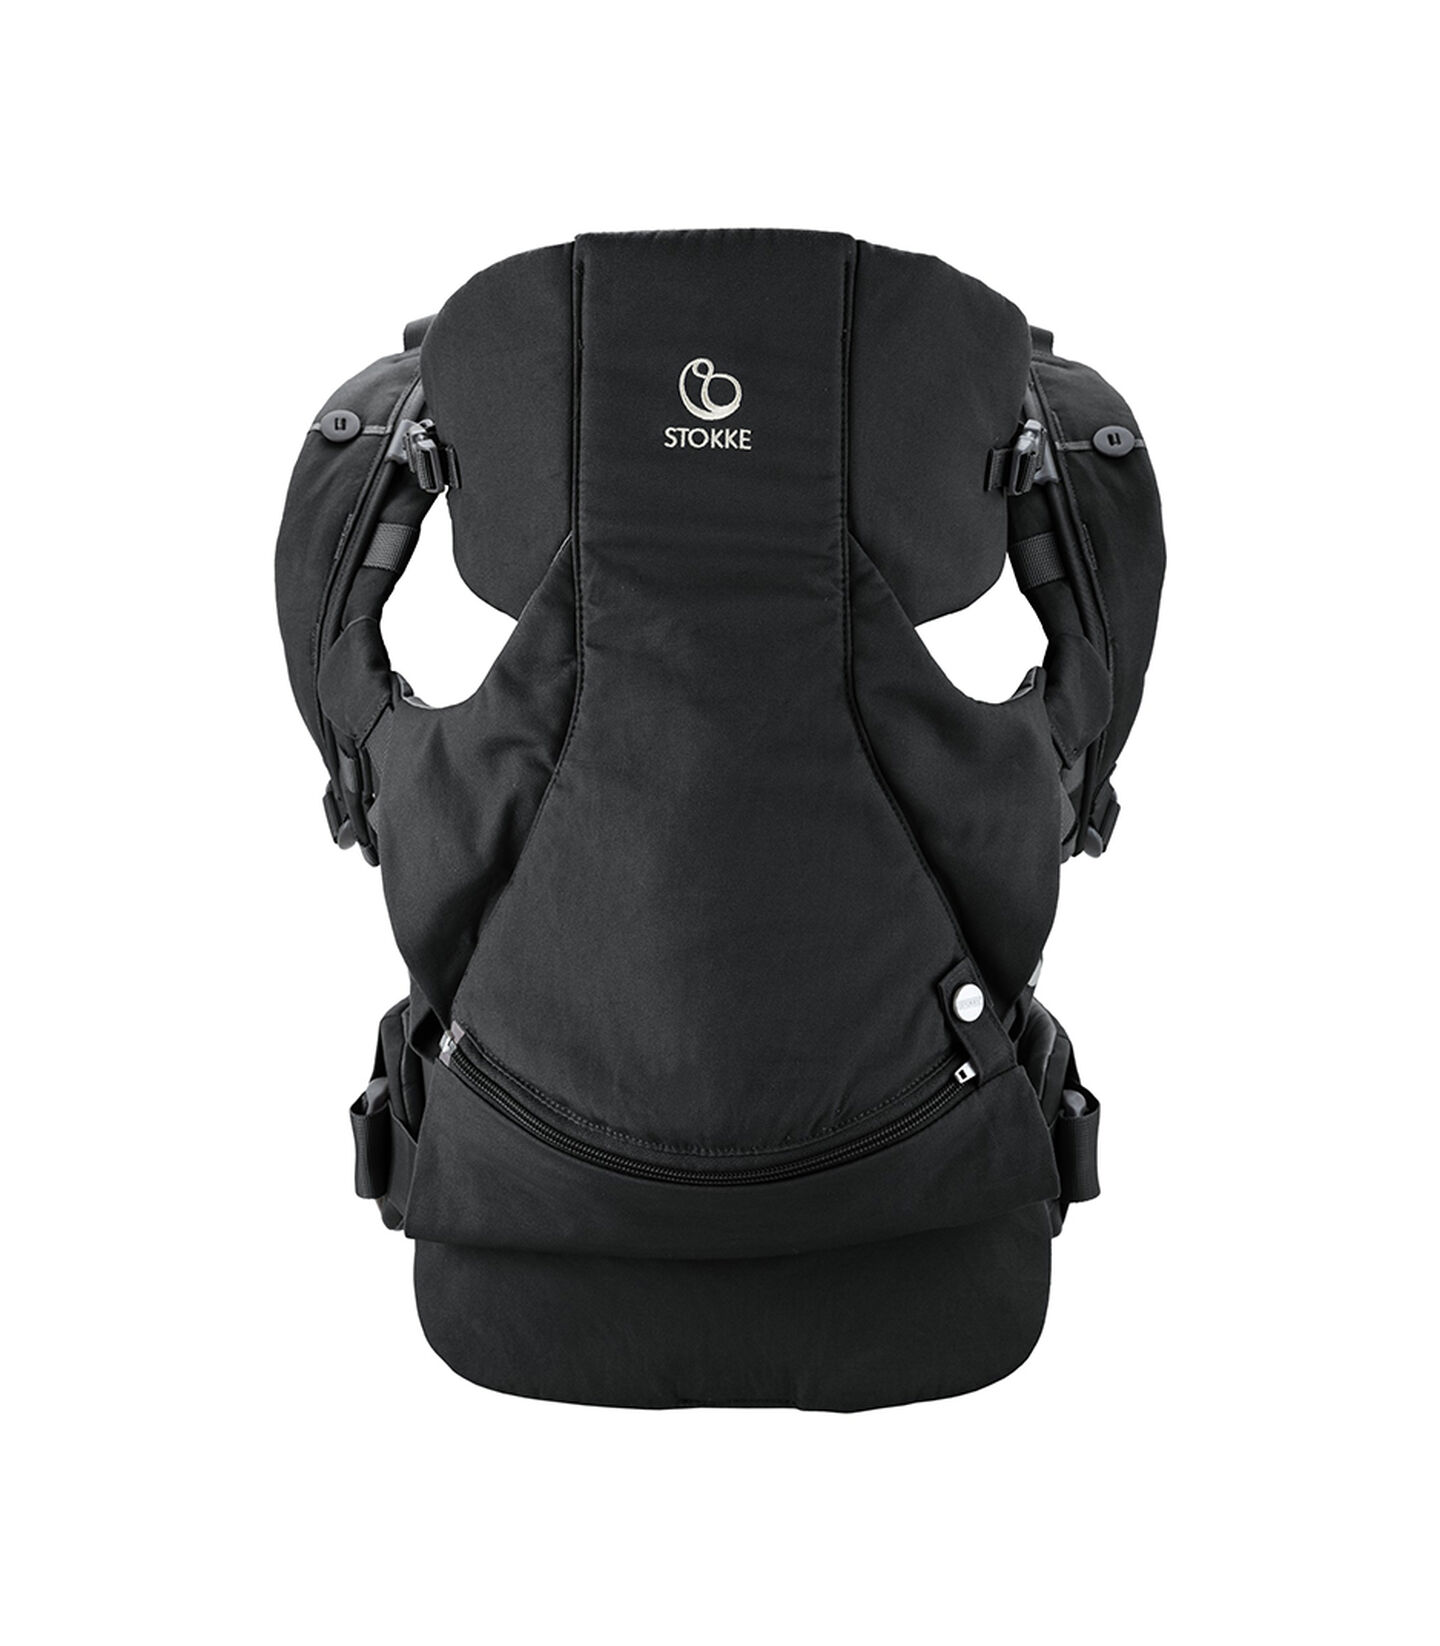 Stokke® MyCarrier™ Mochila frontal Negro, Negro, mainview view 2